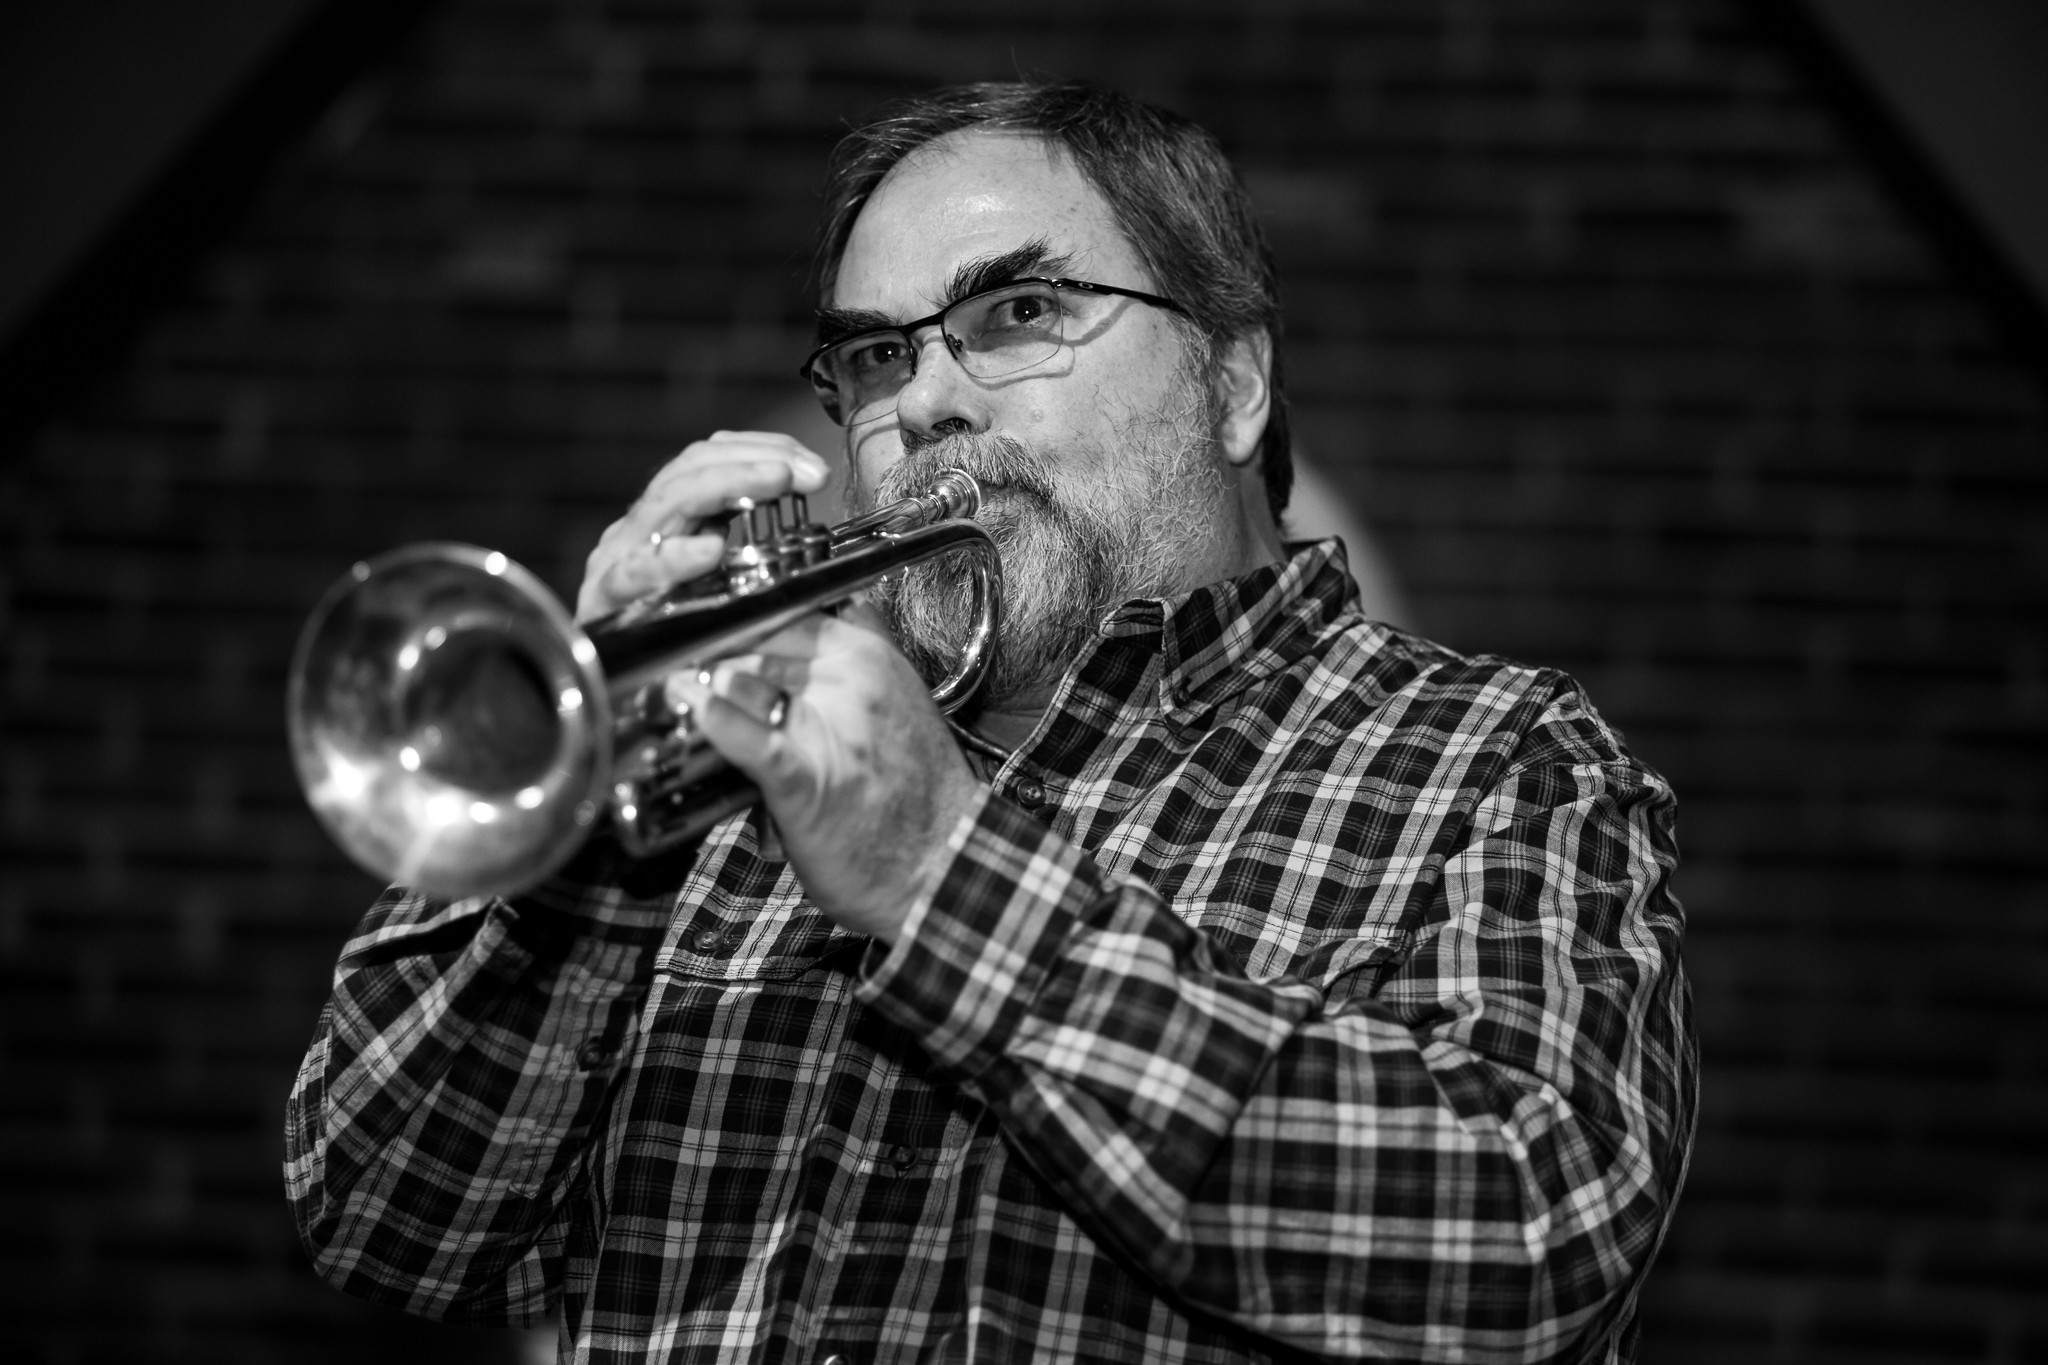 Trumpeter Chris Rysenga performs with his JCI trio at the Union Cabaret & Grille in downtown Kalamazoo.